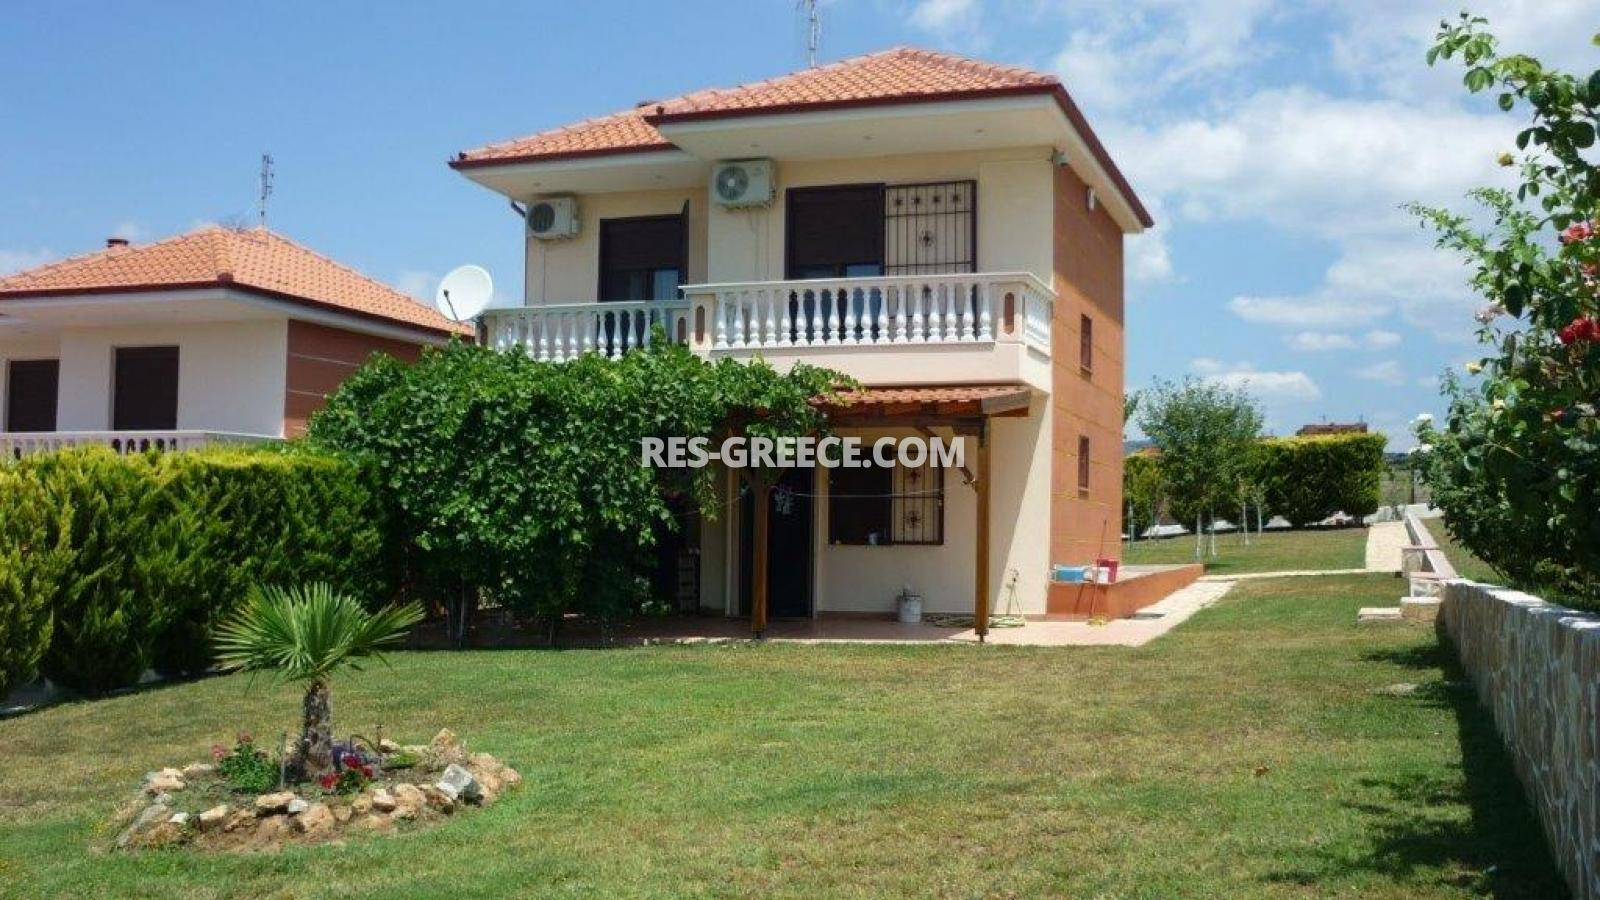 Eleones, Halkidiki-Sithonia, Greece - villa with a pool with great views and big garden - Photo 1